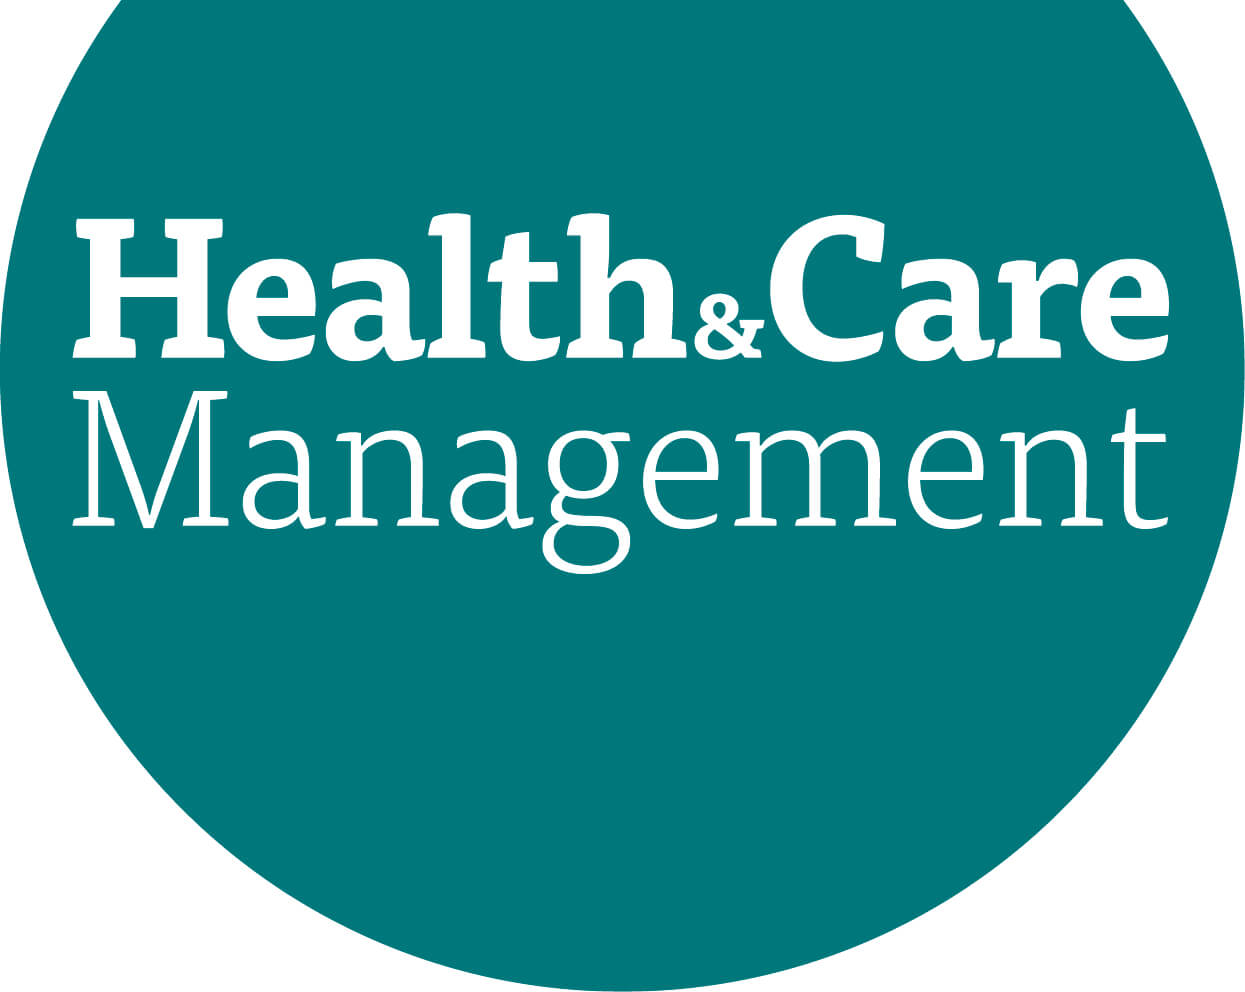 Health&Care Management